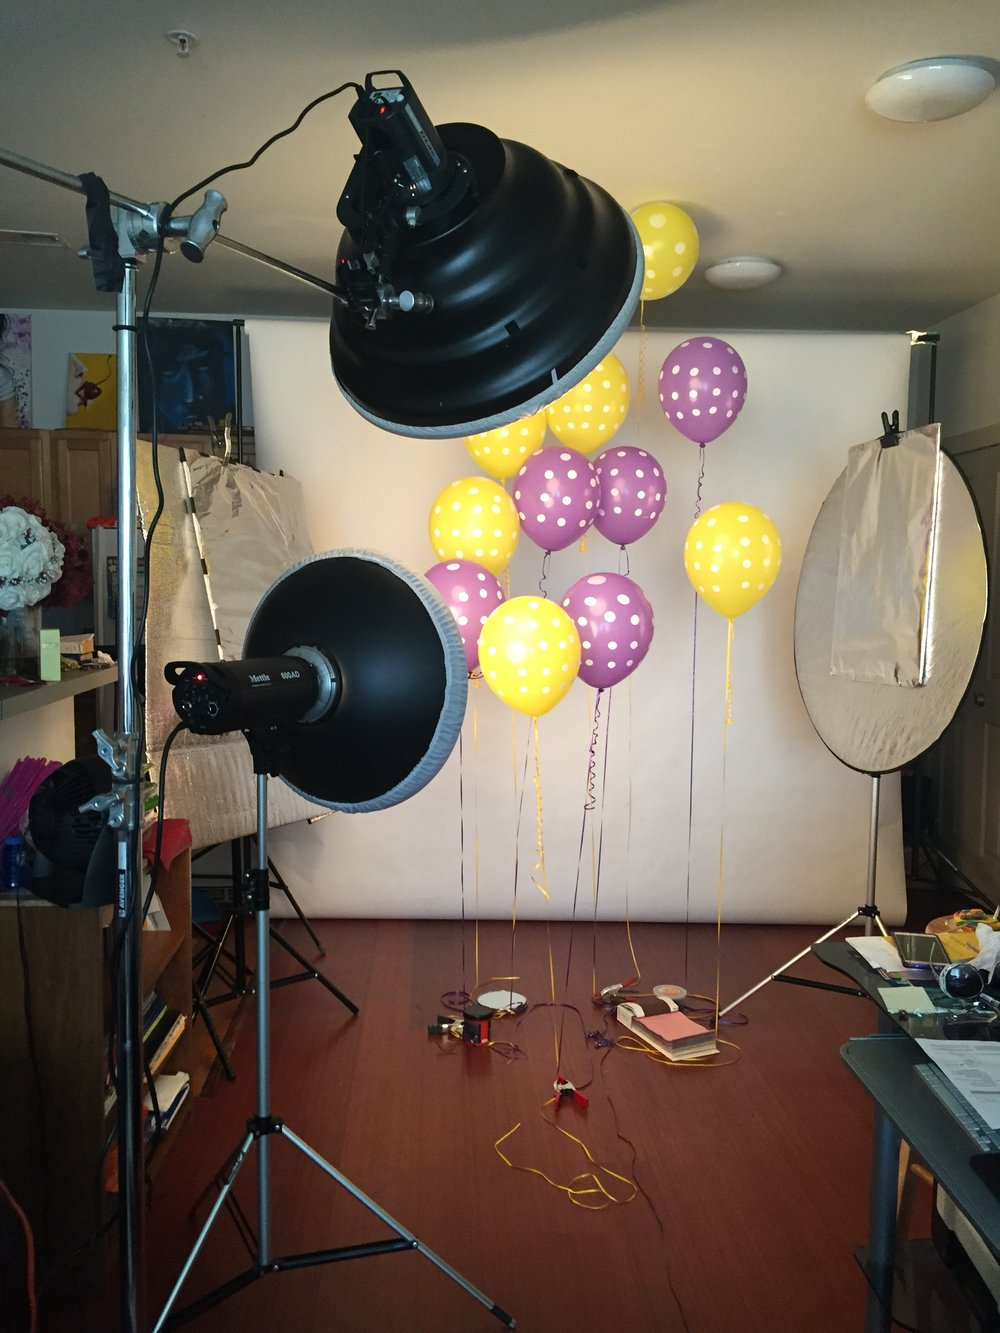 Getting ready for the shoot, using some A clamps to hold down the balloons.